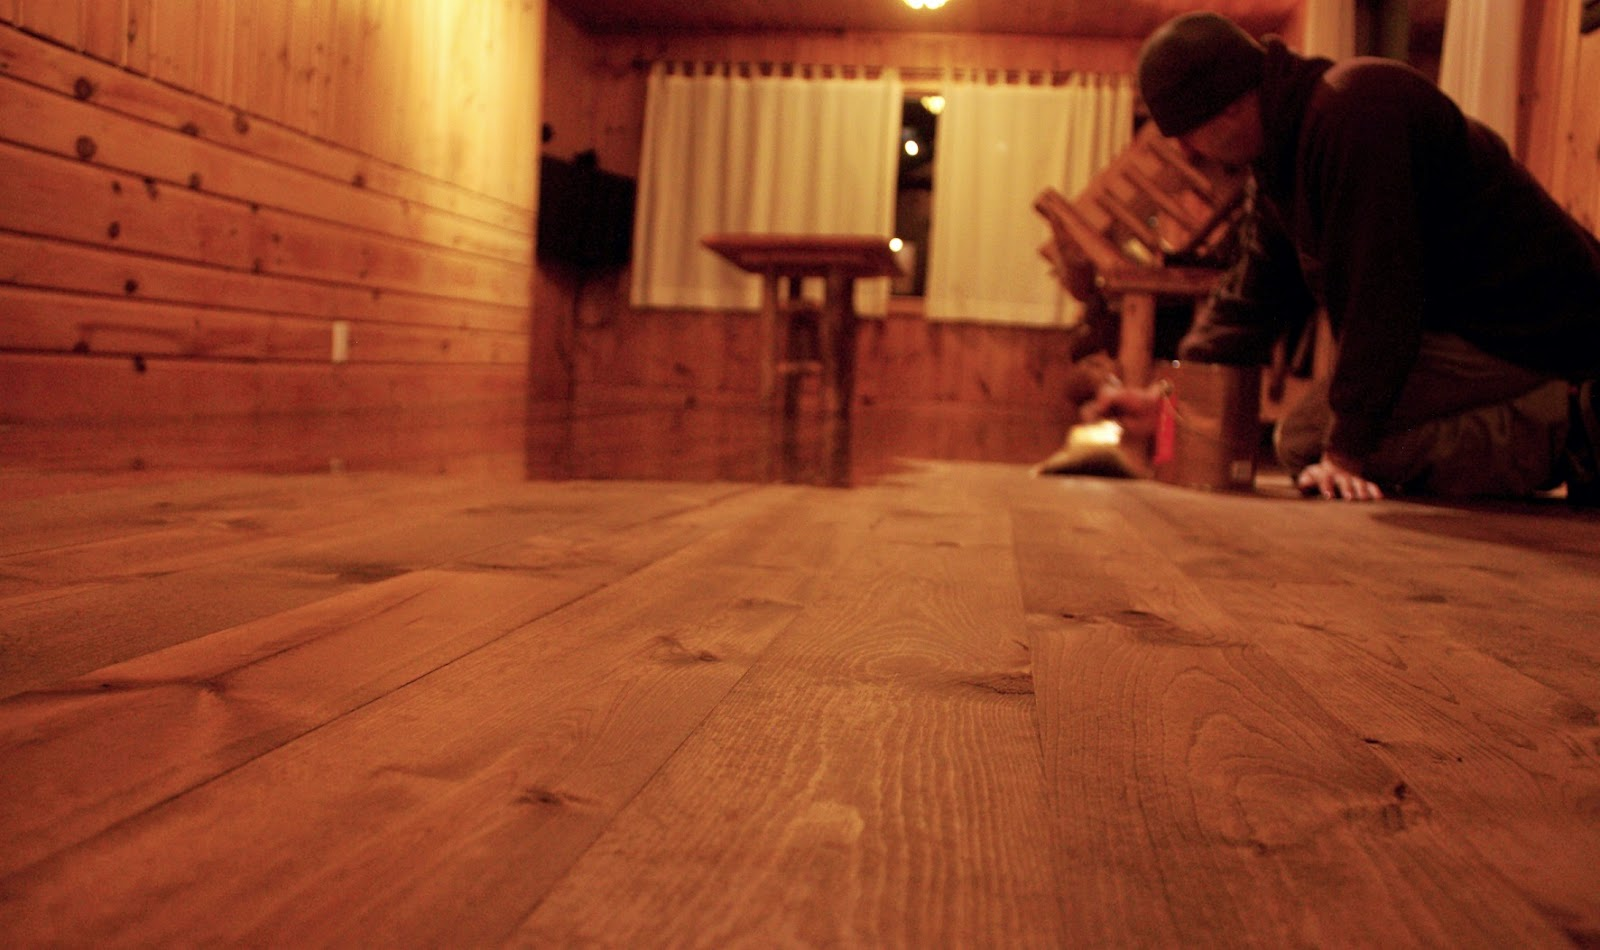 Chris Kuehn putting the first coat of finish onto the newly laid floor.